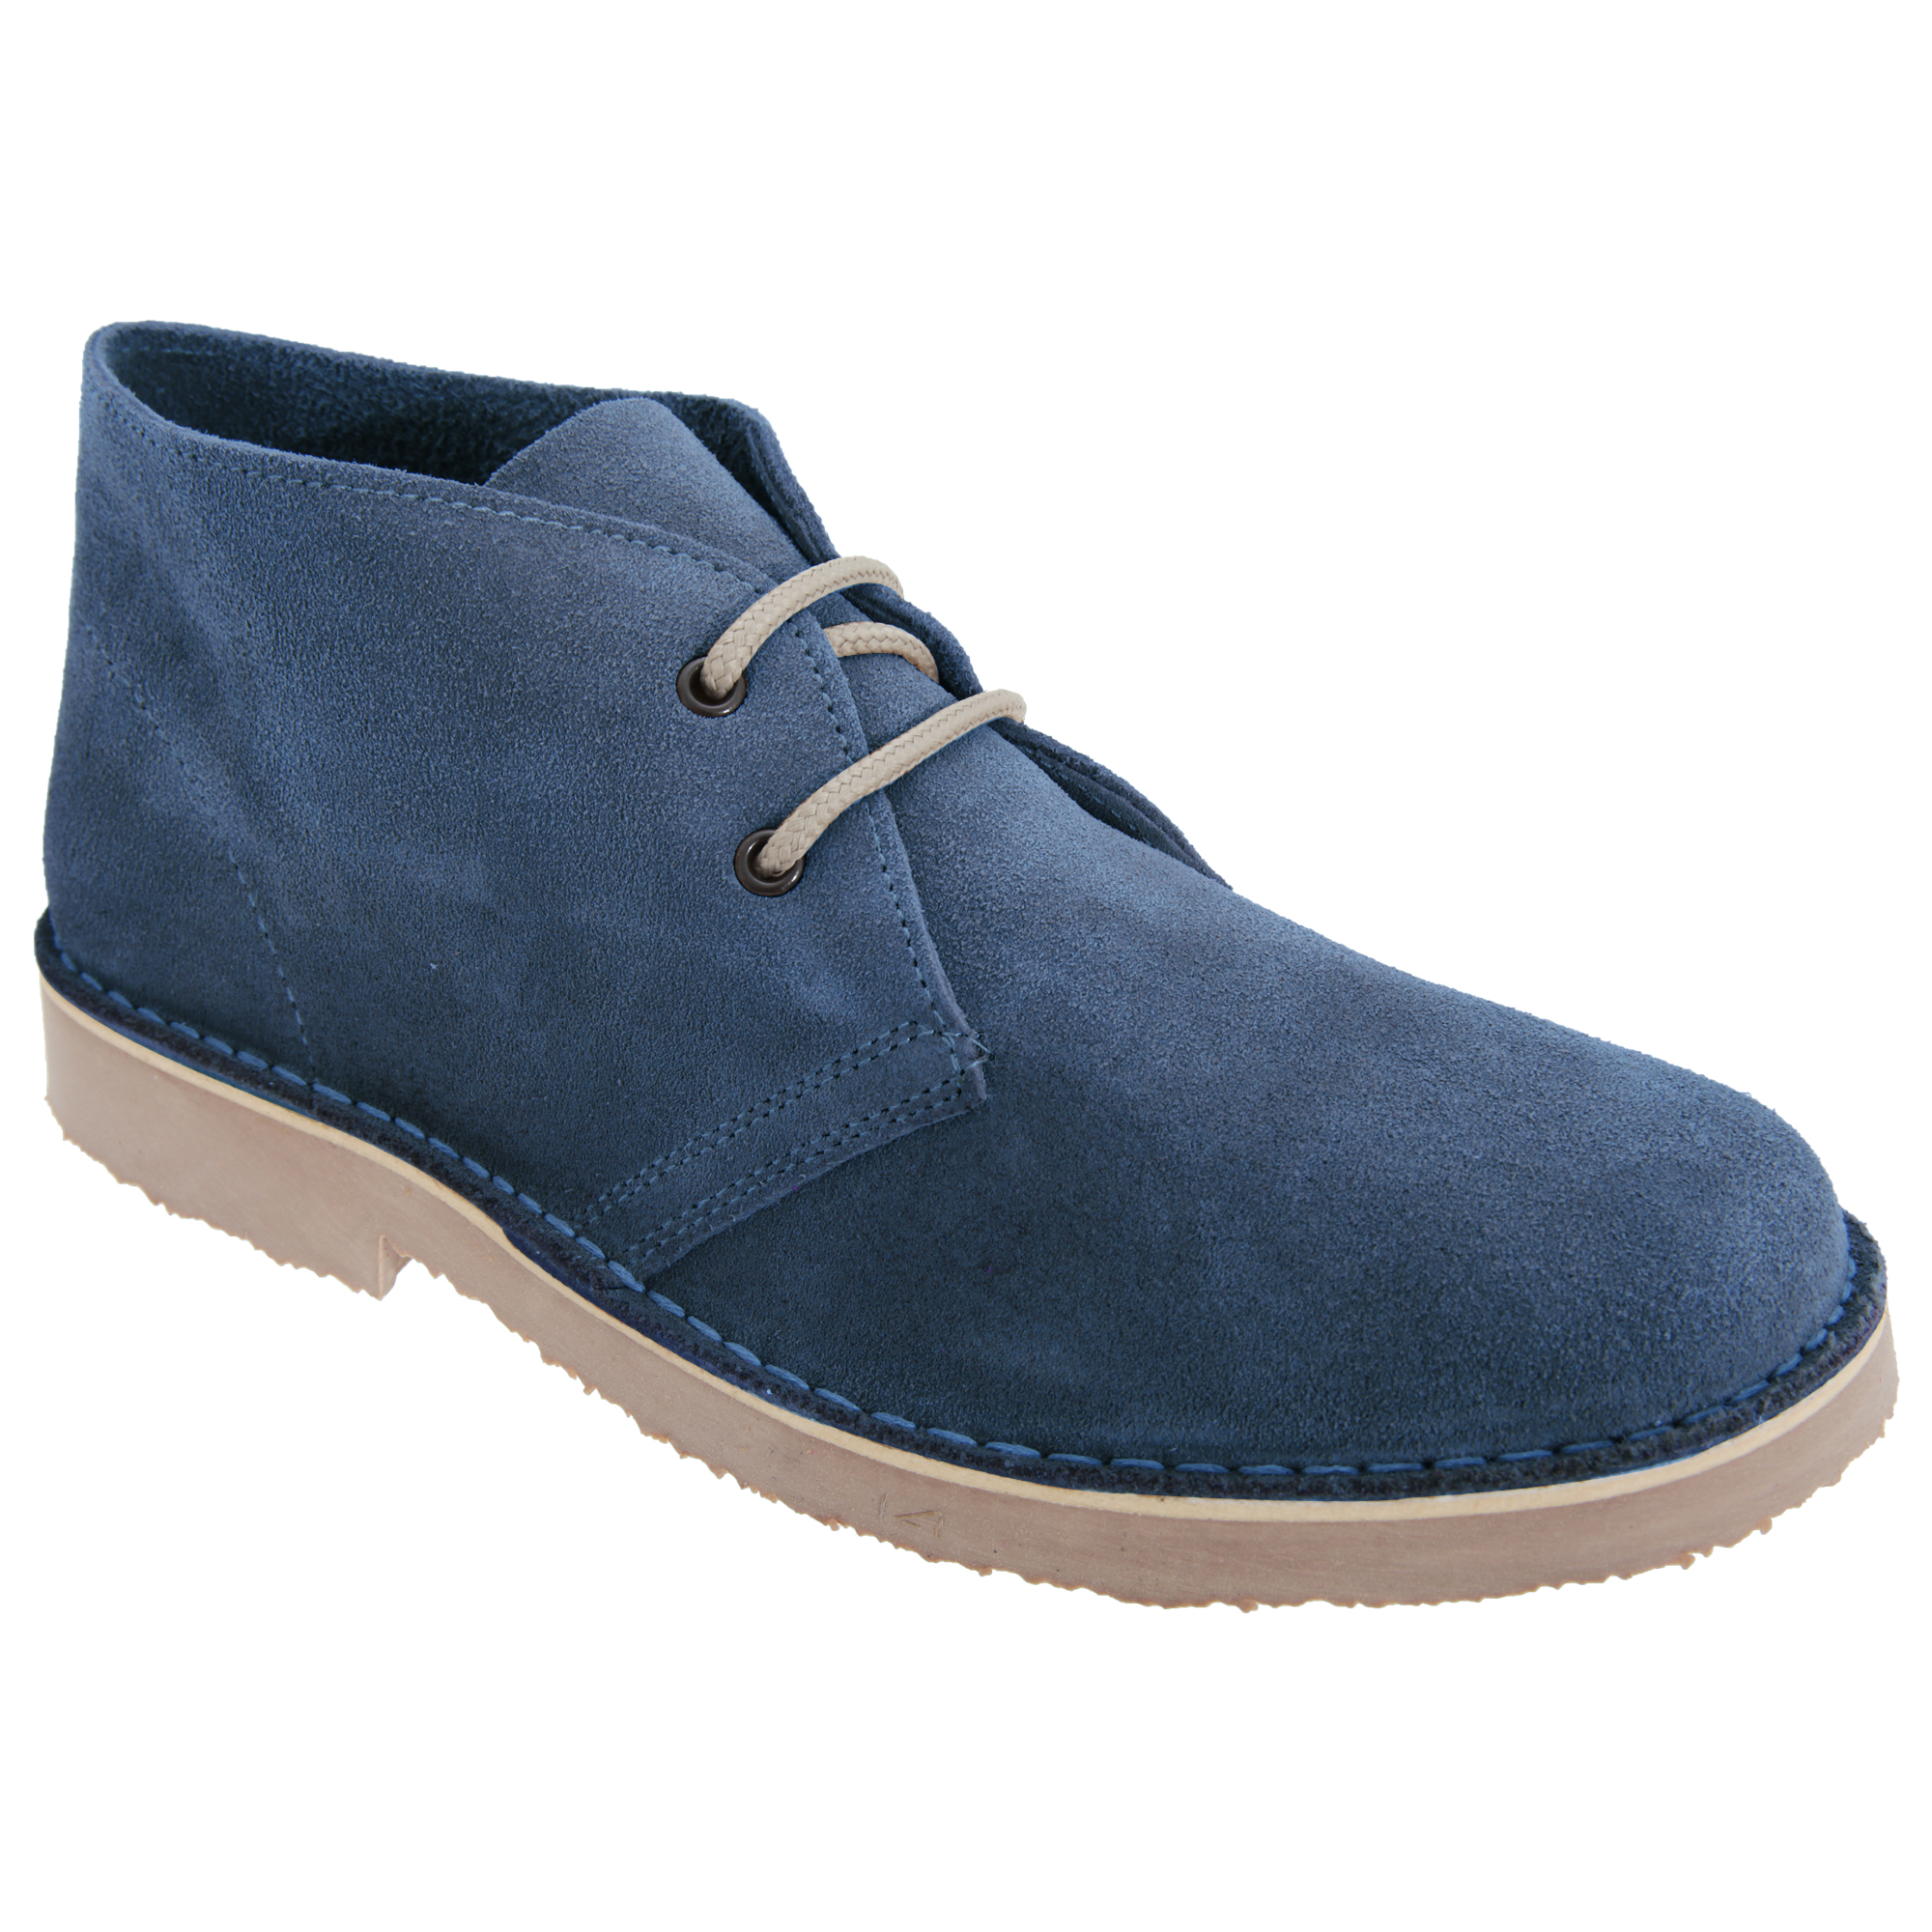 Roamers Mens Real Suede Round Toe Unlined Desert Boots (9 UK) (Navy)